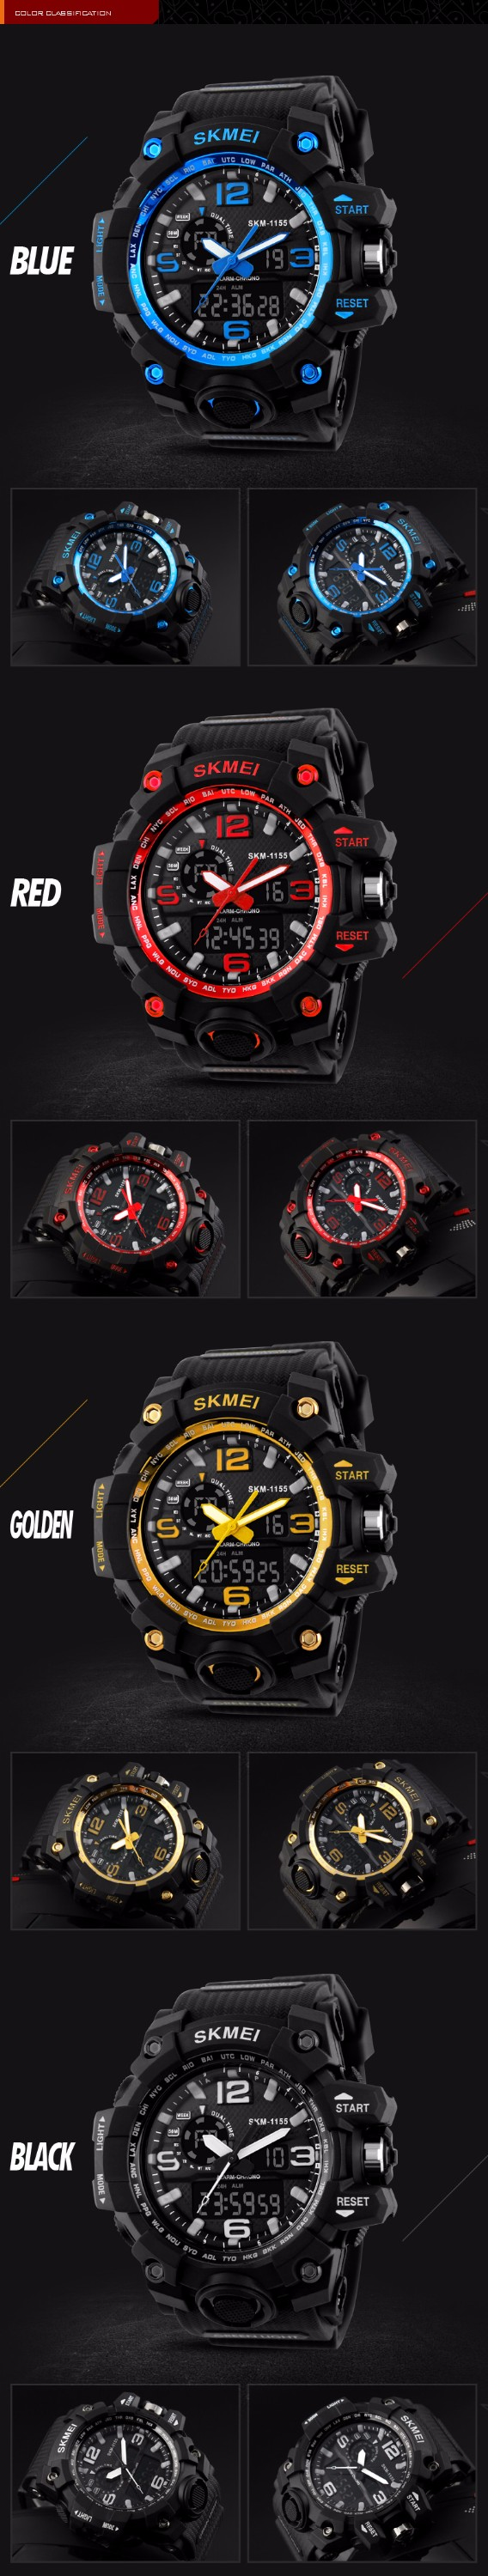 sk 1155 2017 New Design Skmei Brand Sport Watches For Men 3ATM Waterproof Watches Manufacturer Supplier Exporter